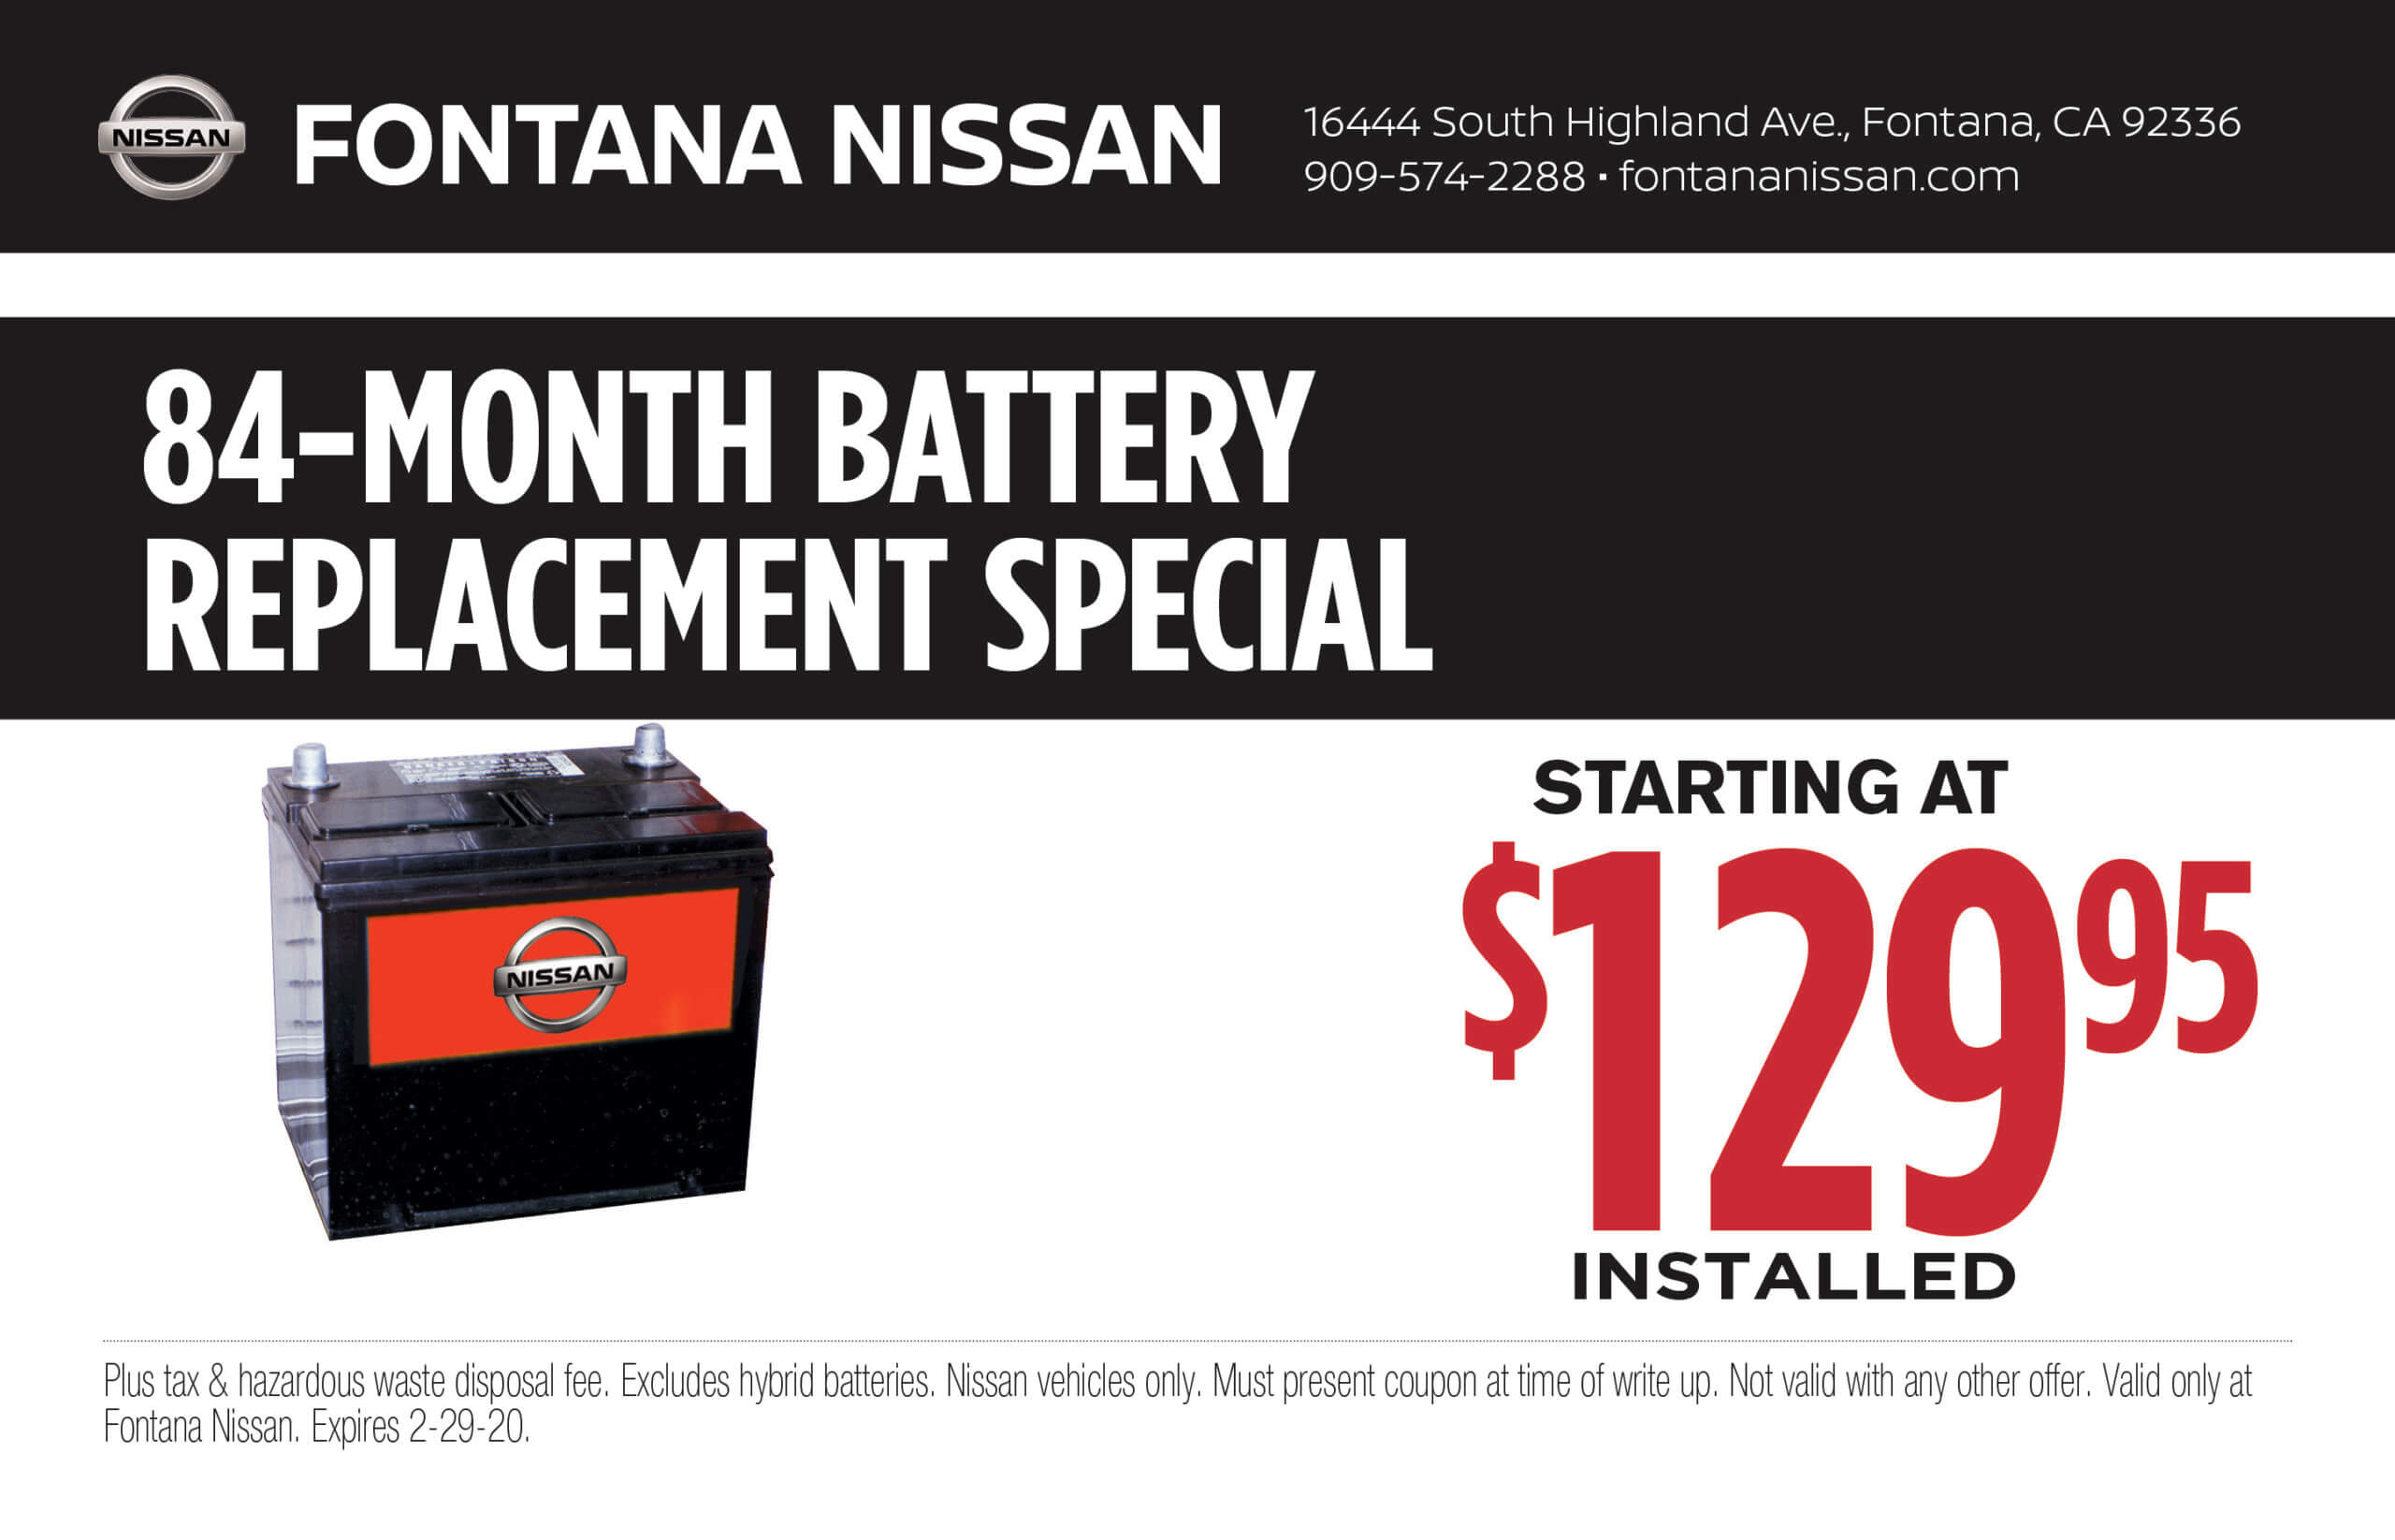 84-Month Battery Replacement